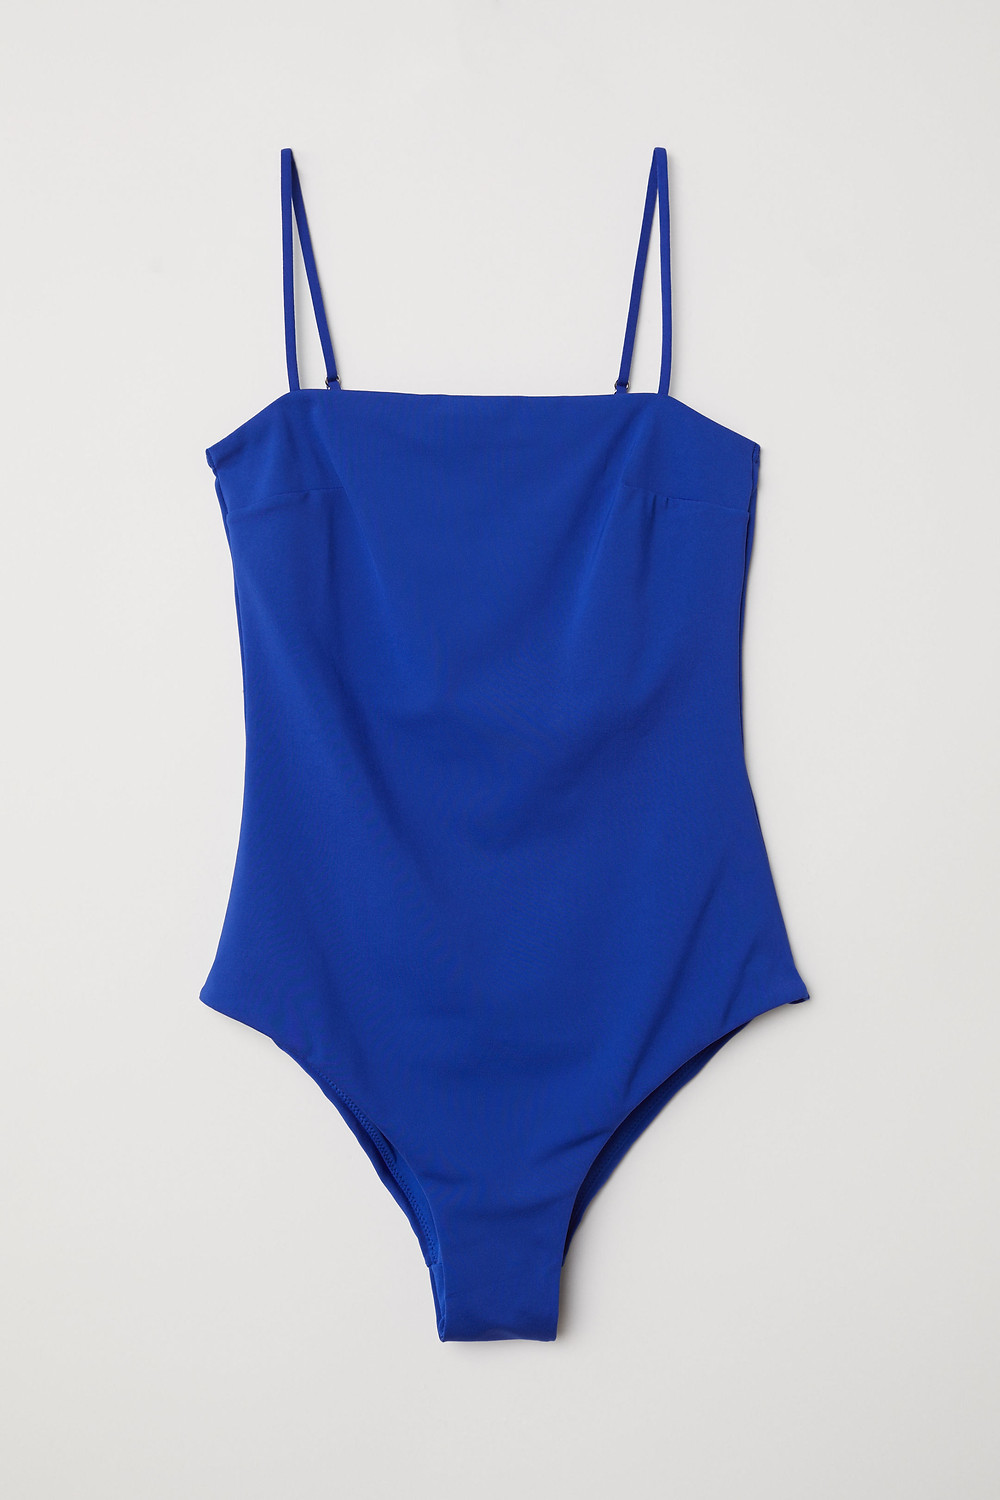 H&M Blue Swimsuit $24.99